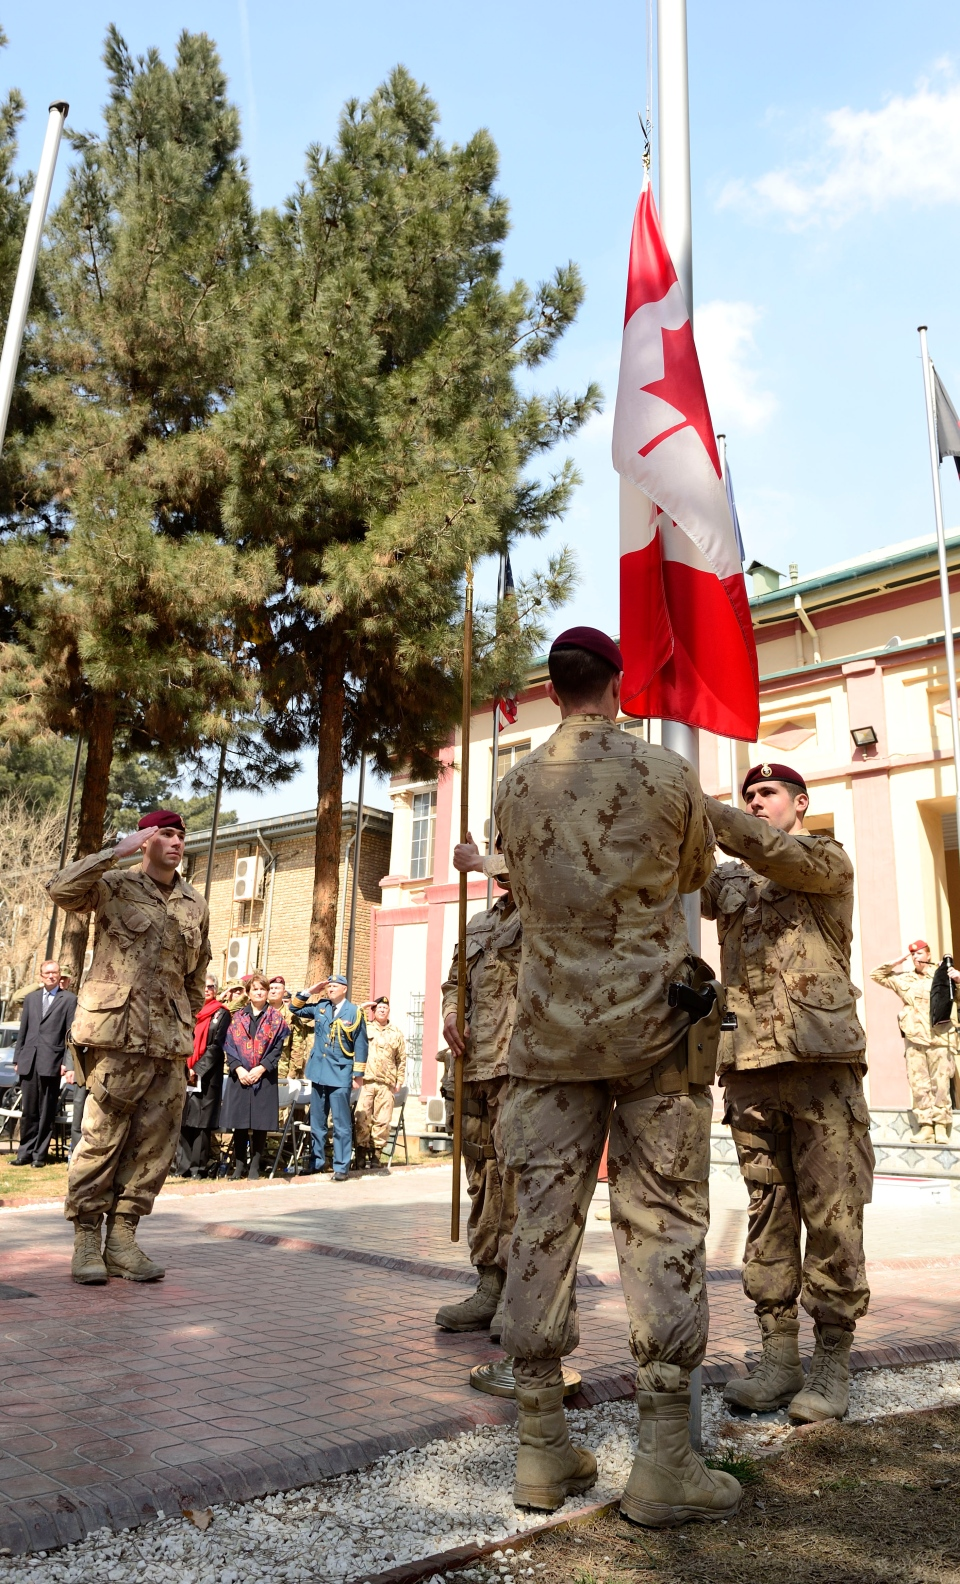 Master Cpl. Jordan Taylor salutes as the Canadian flag is lowered at the International Security Assistance Force headquarters, Wednesday, March 12, 2014. (Master Cpl. Patrick Blanchard / Canadian Forces Combat Camera)